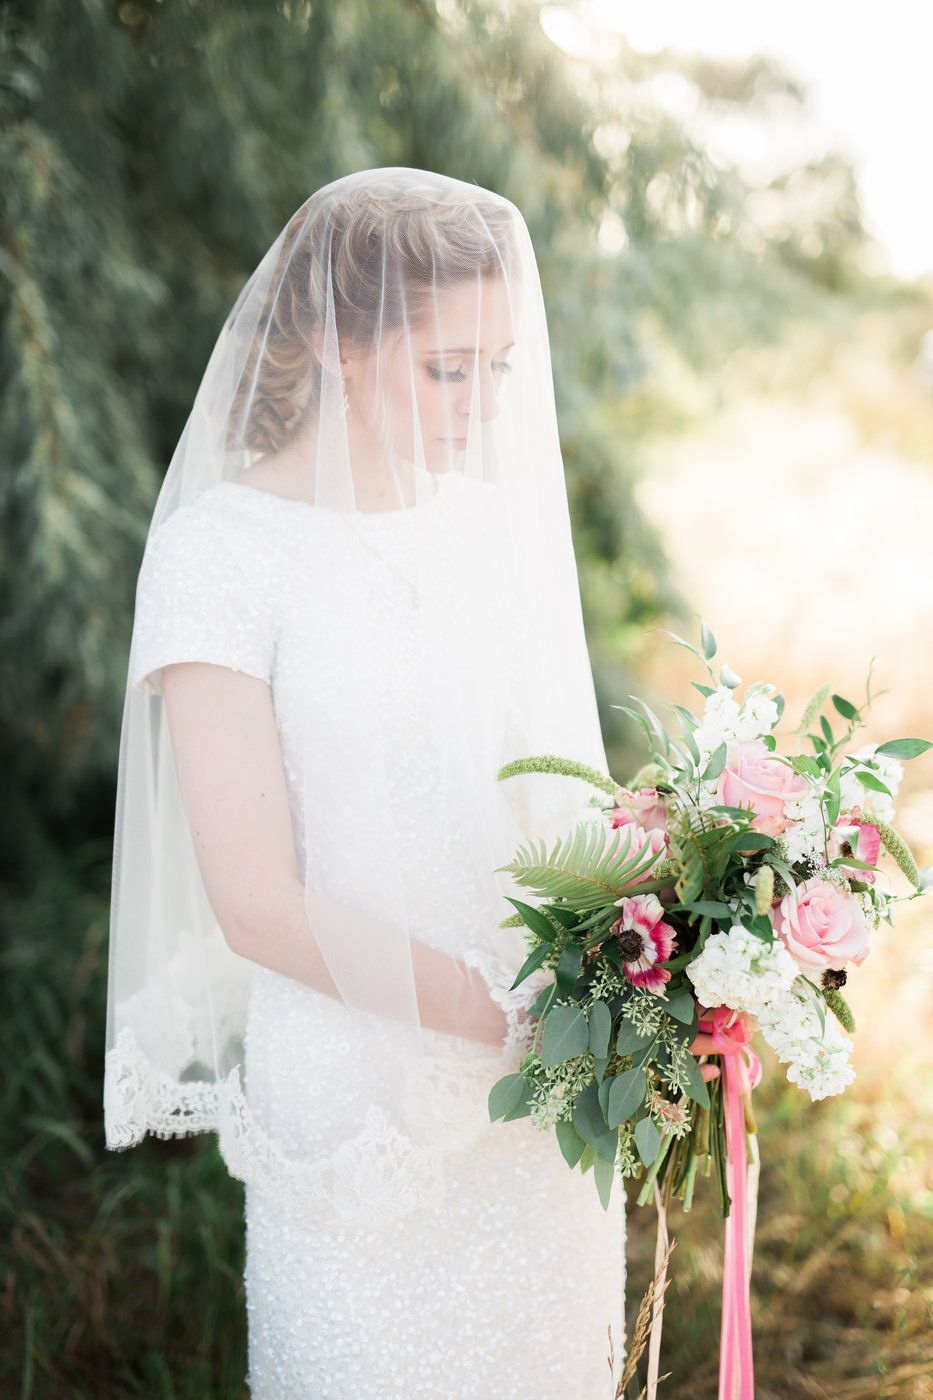 Idaho Falls Stylized Formal Shoot Weddings Gowns And Veils